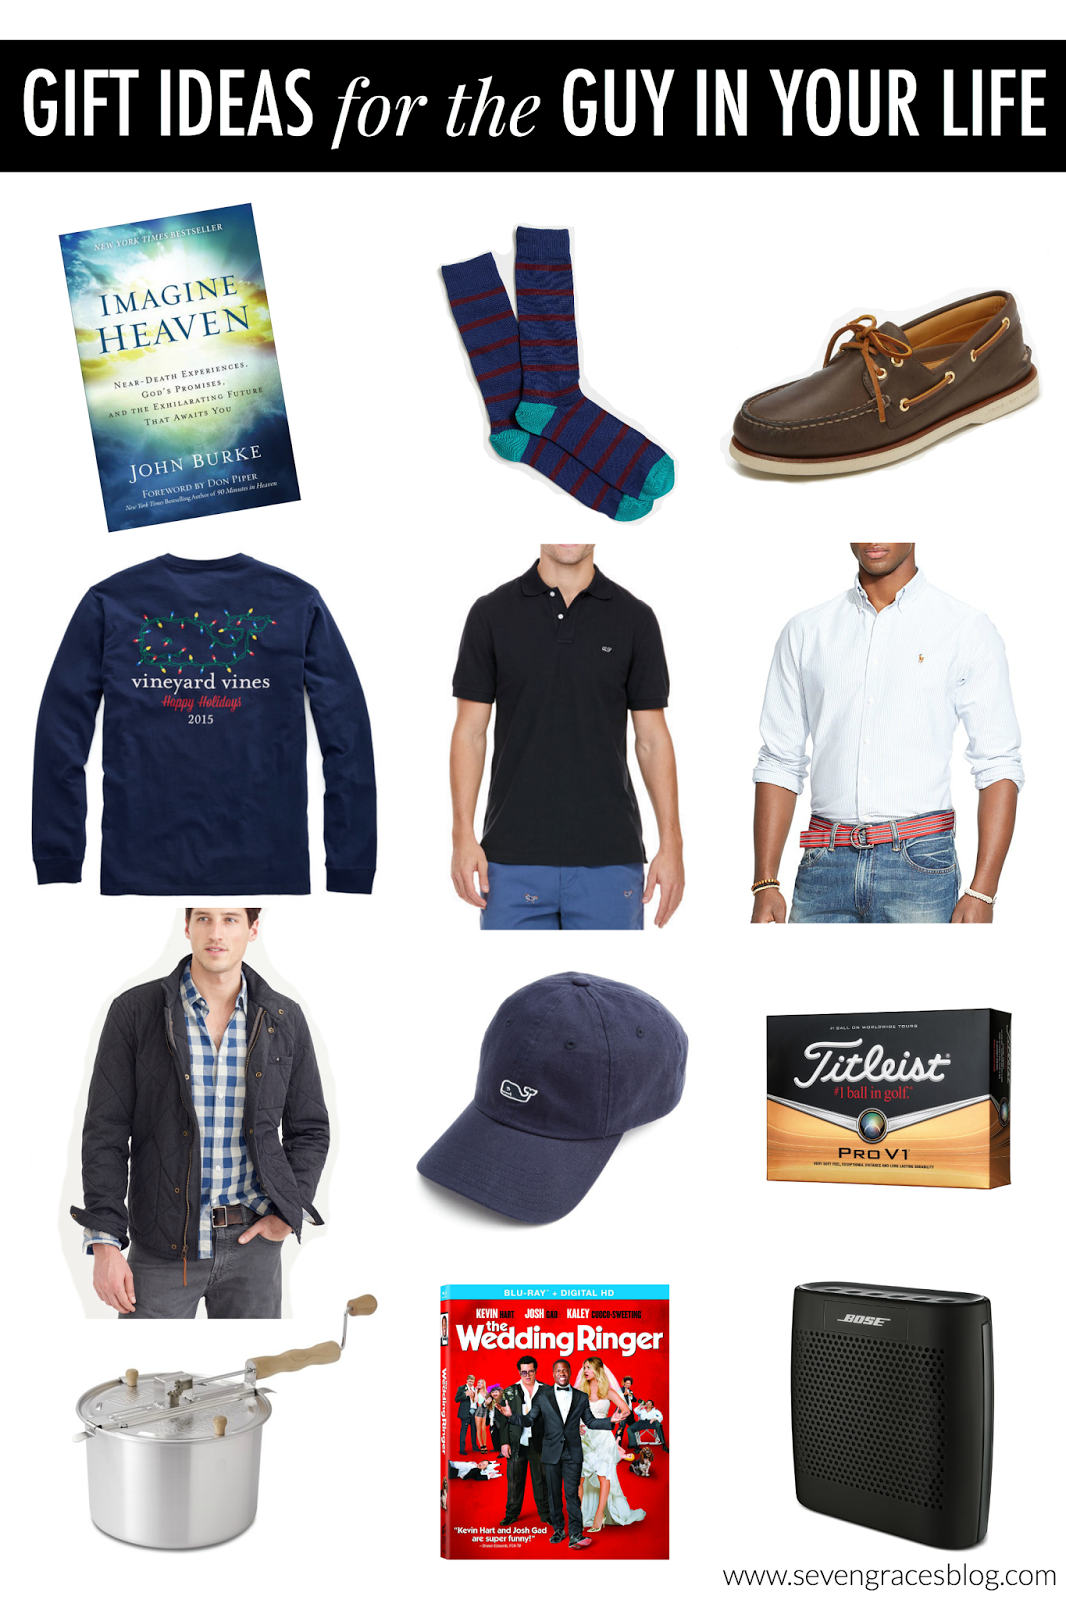 Christmas Gift Ideas for the Guy in Your Life - Seven Graces